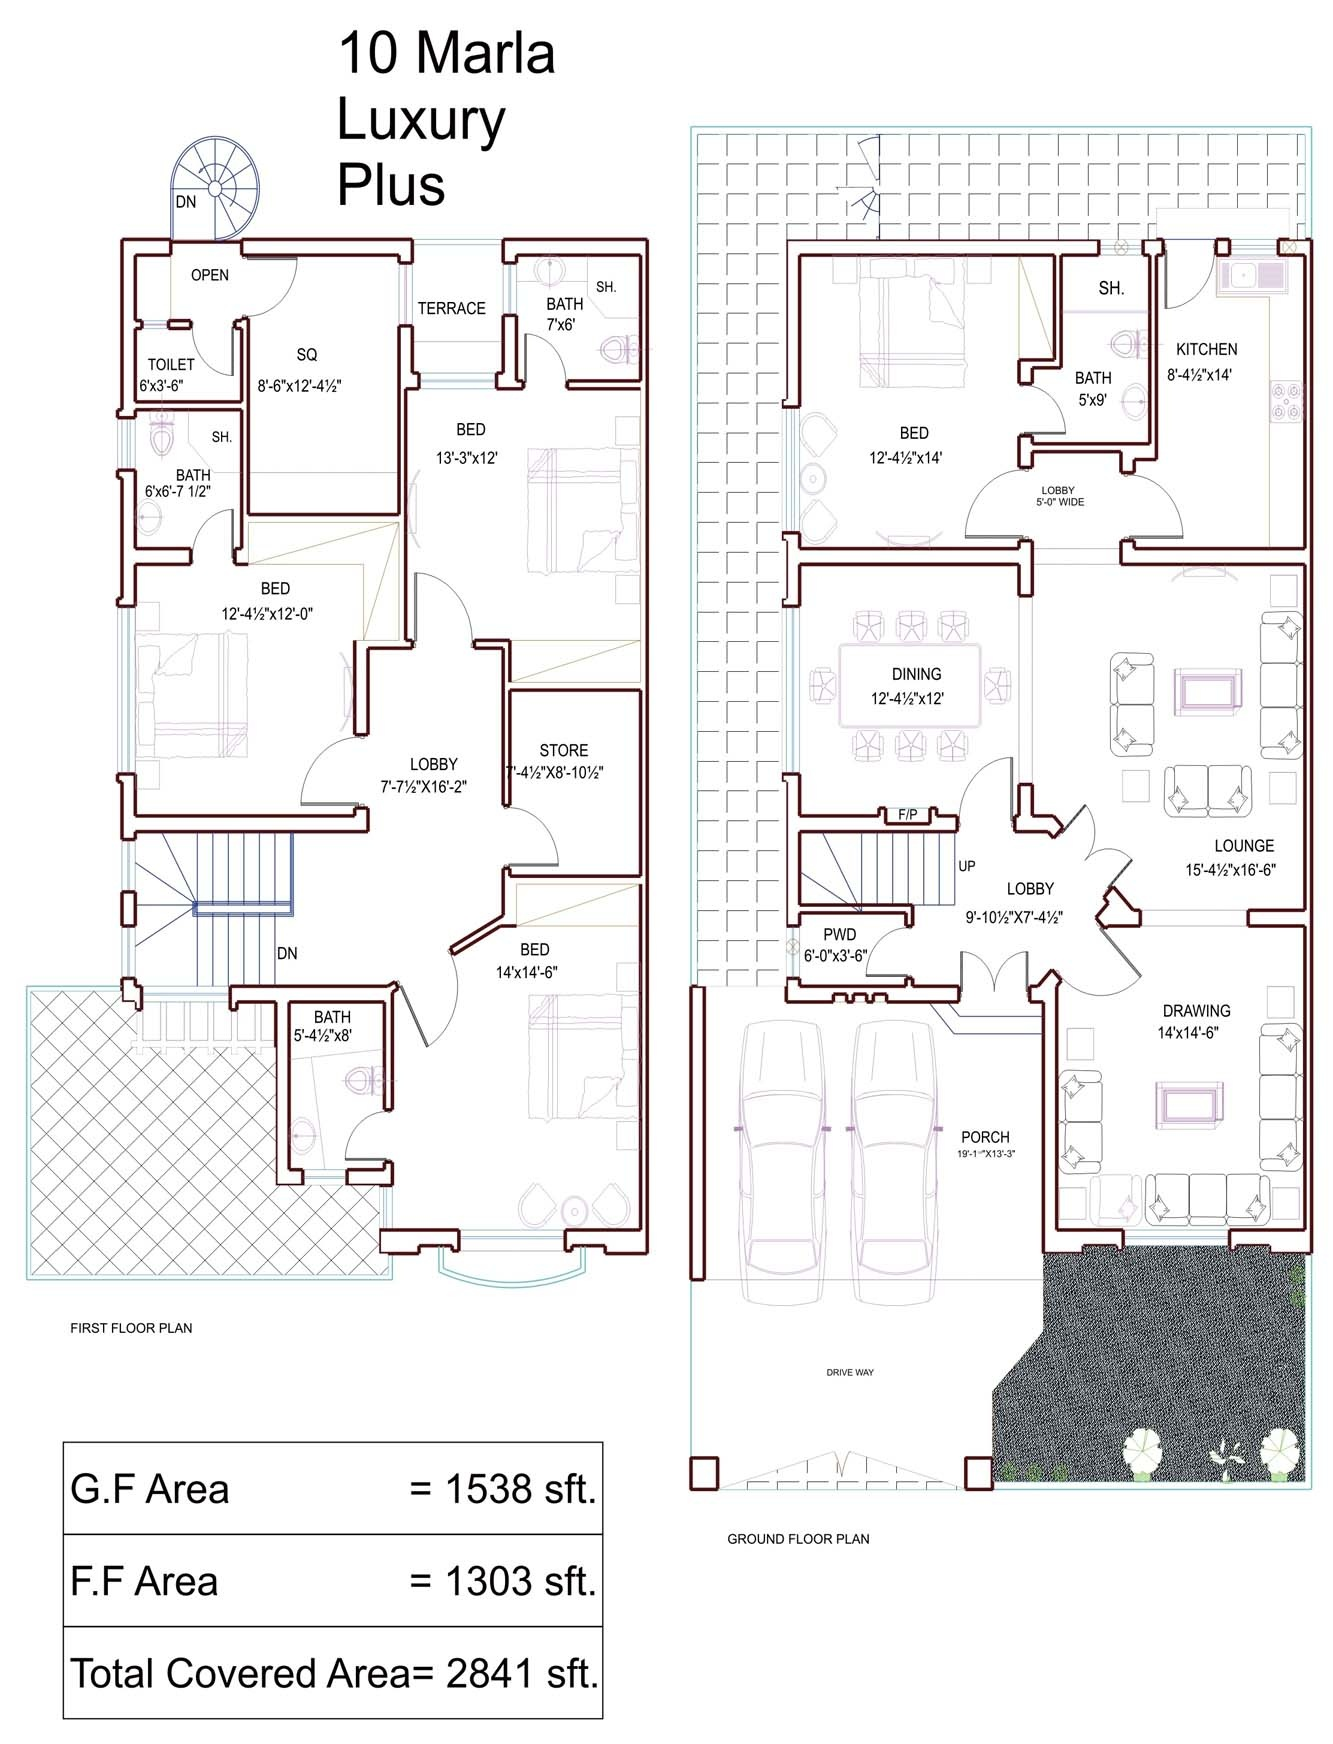 10 marla house plans civil engineers pk for Home designs map